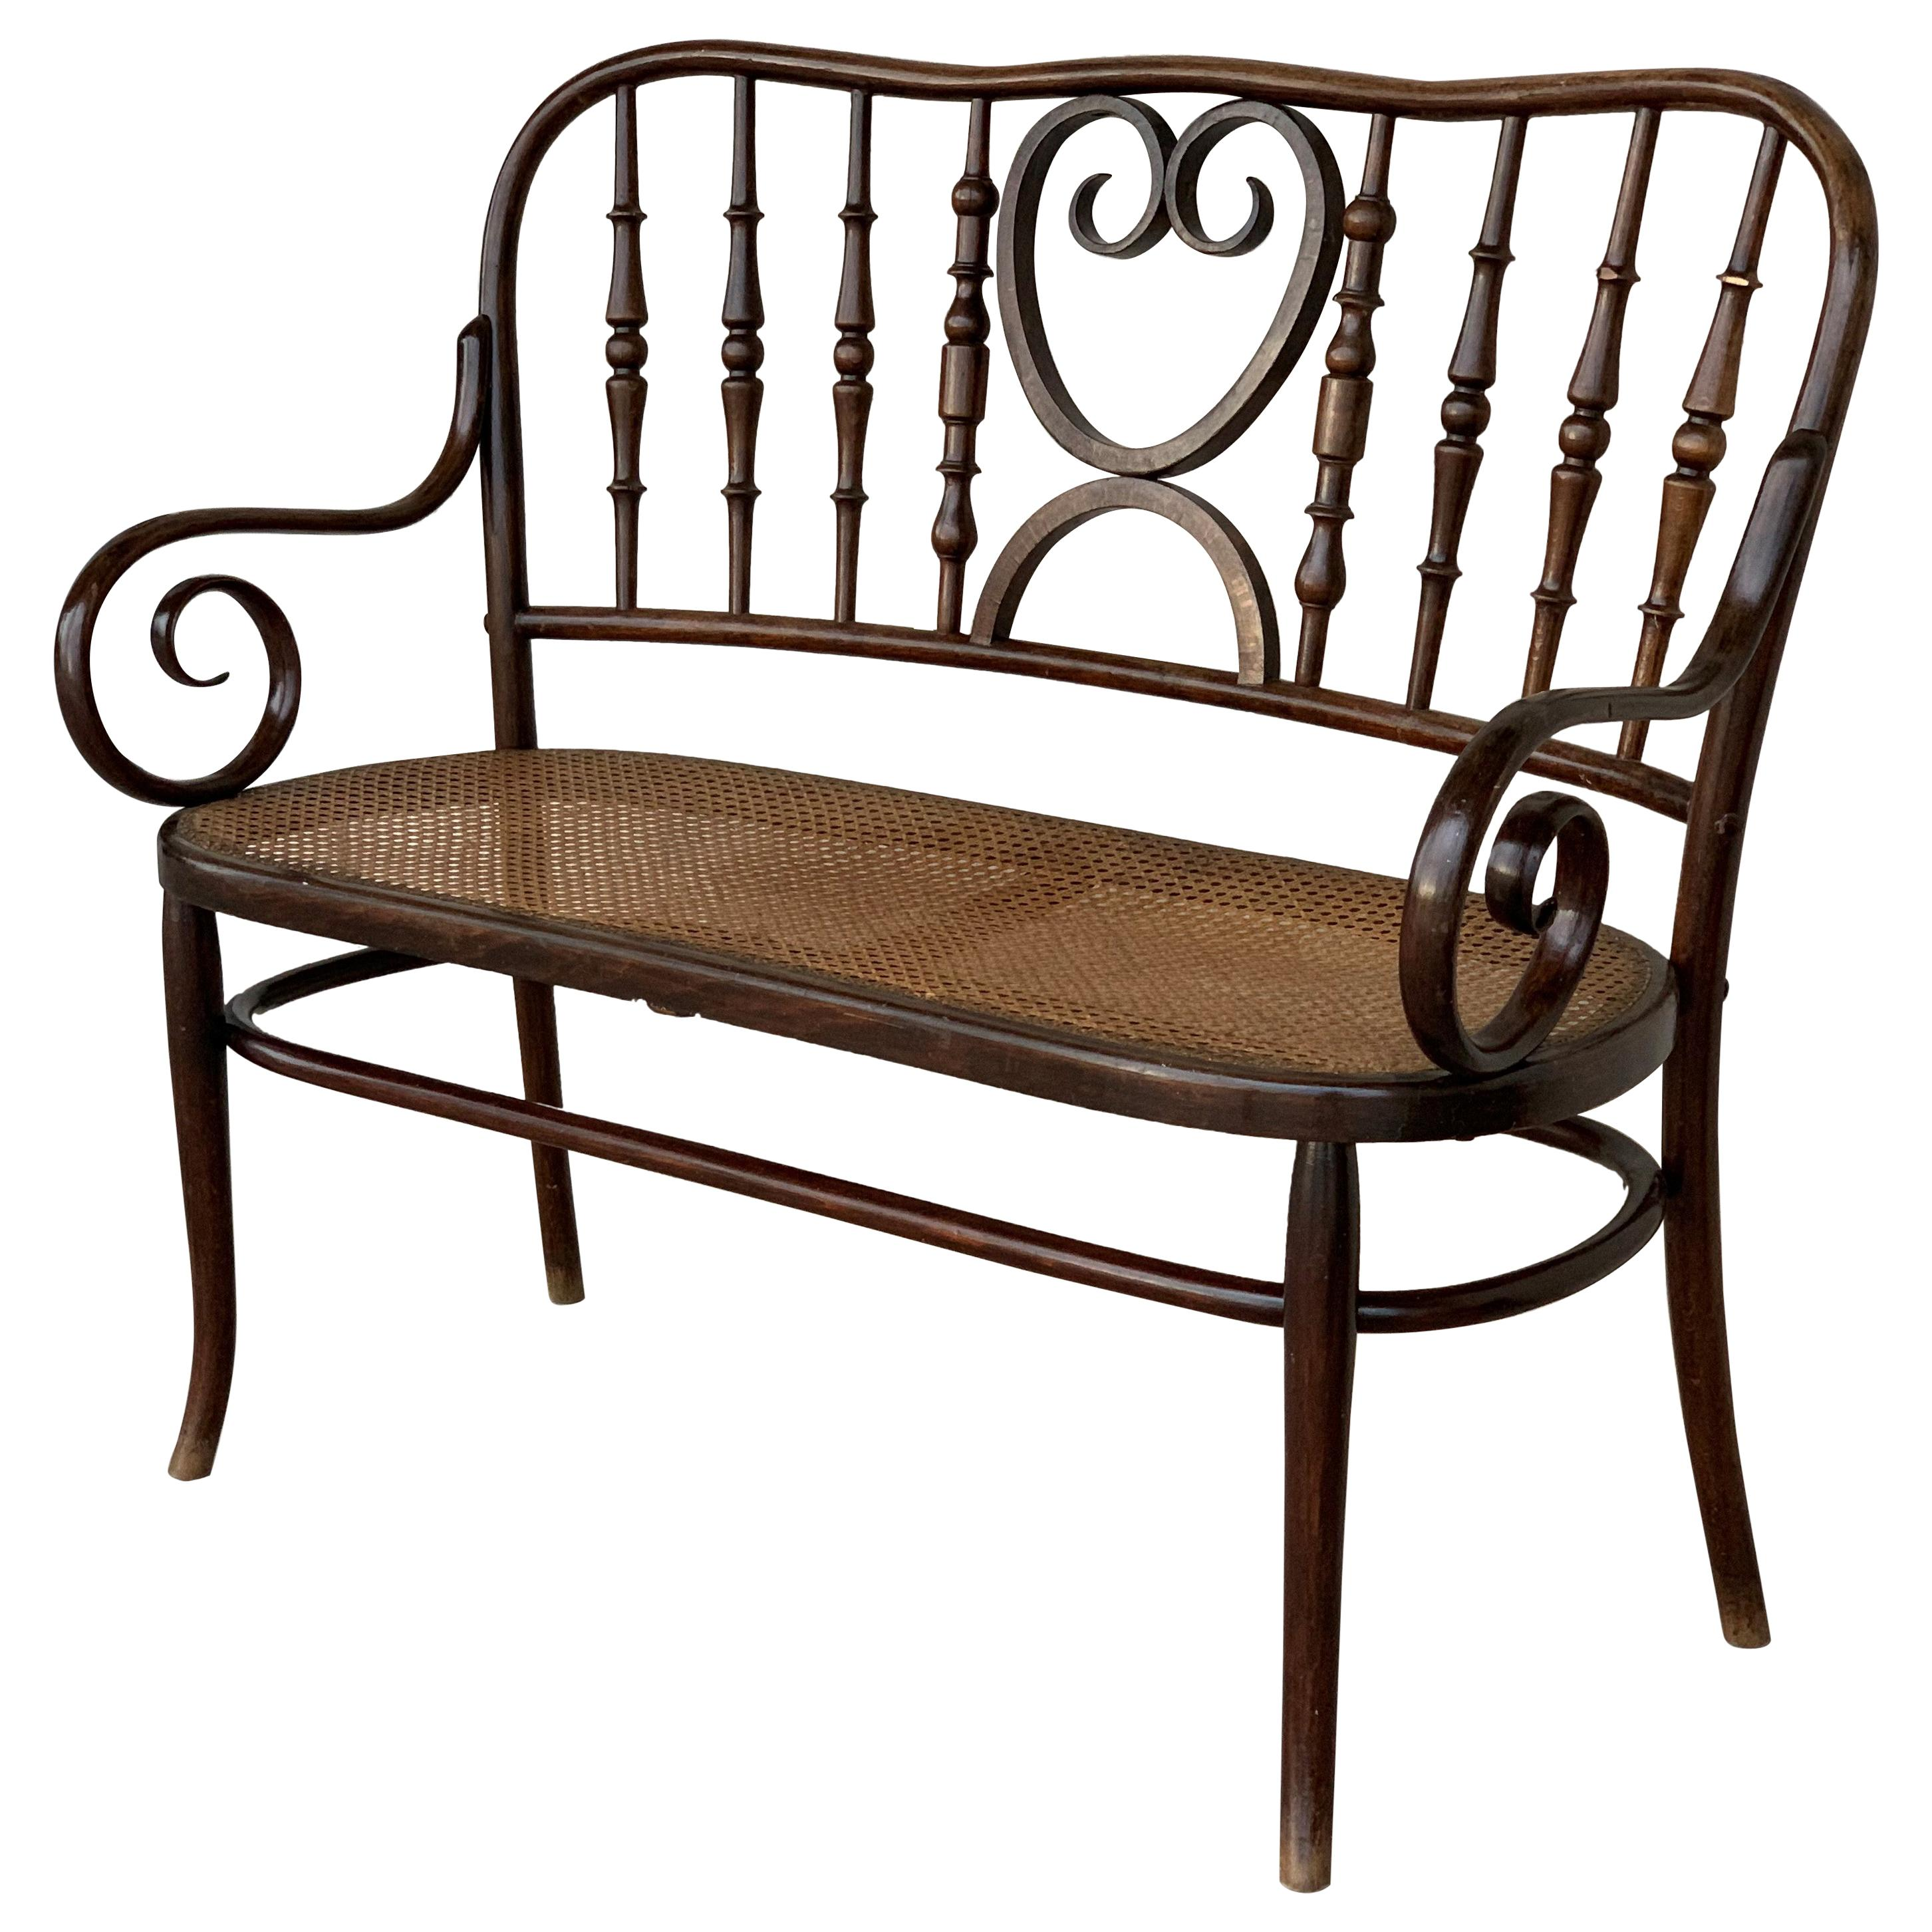 20th Century Bentwood Sofa in the Thonet Style, circa 1925, Caned Seat